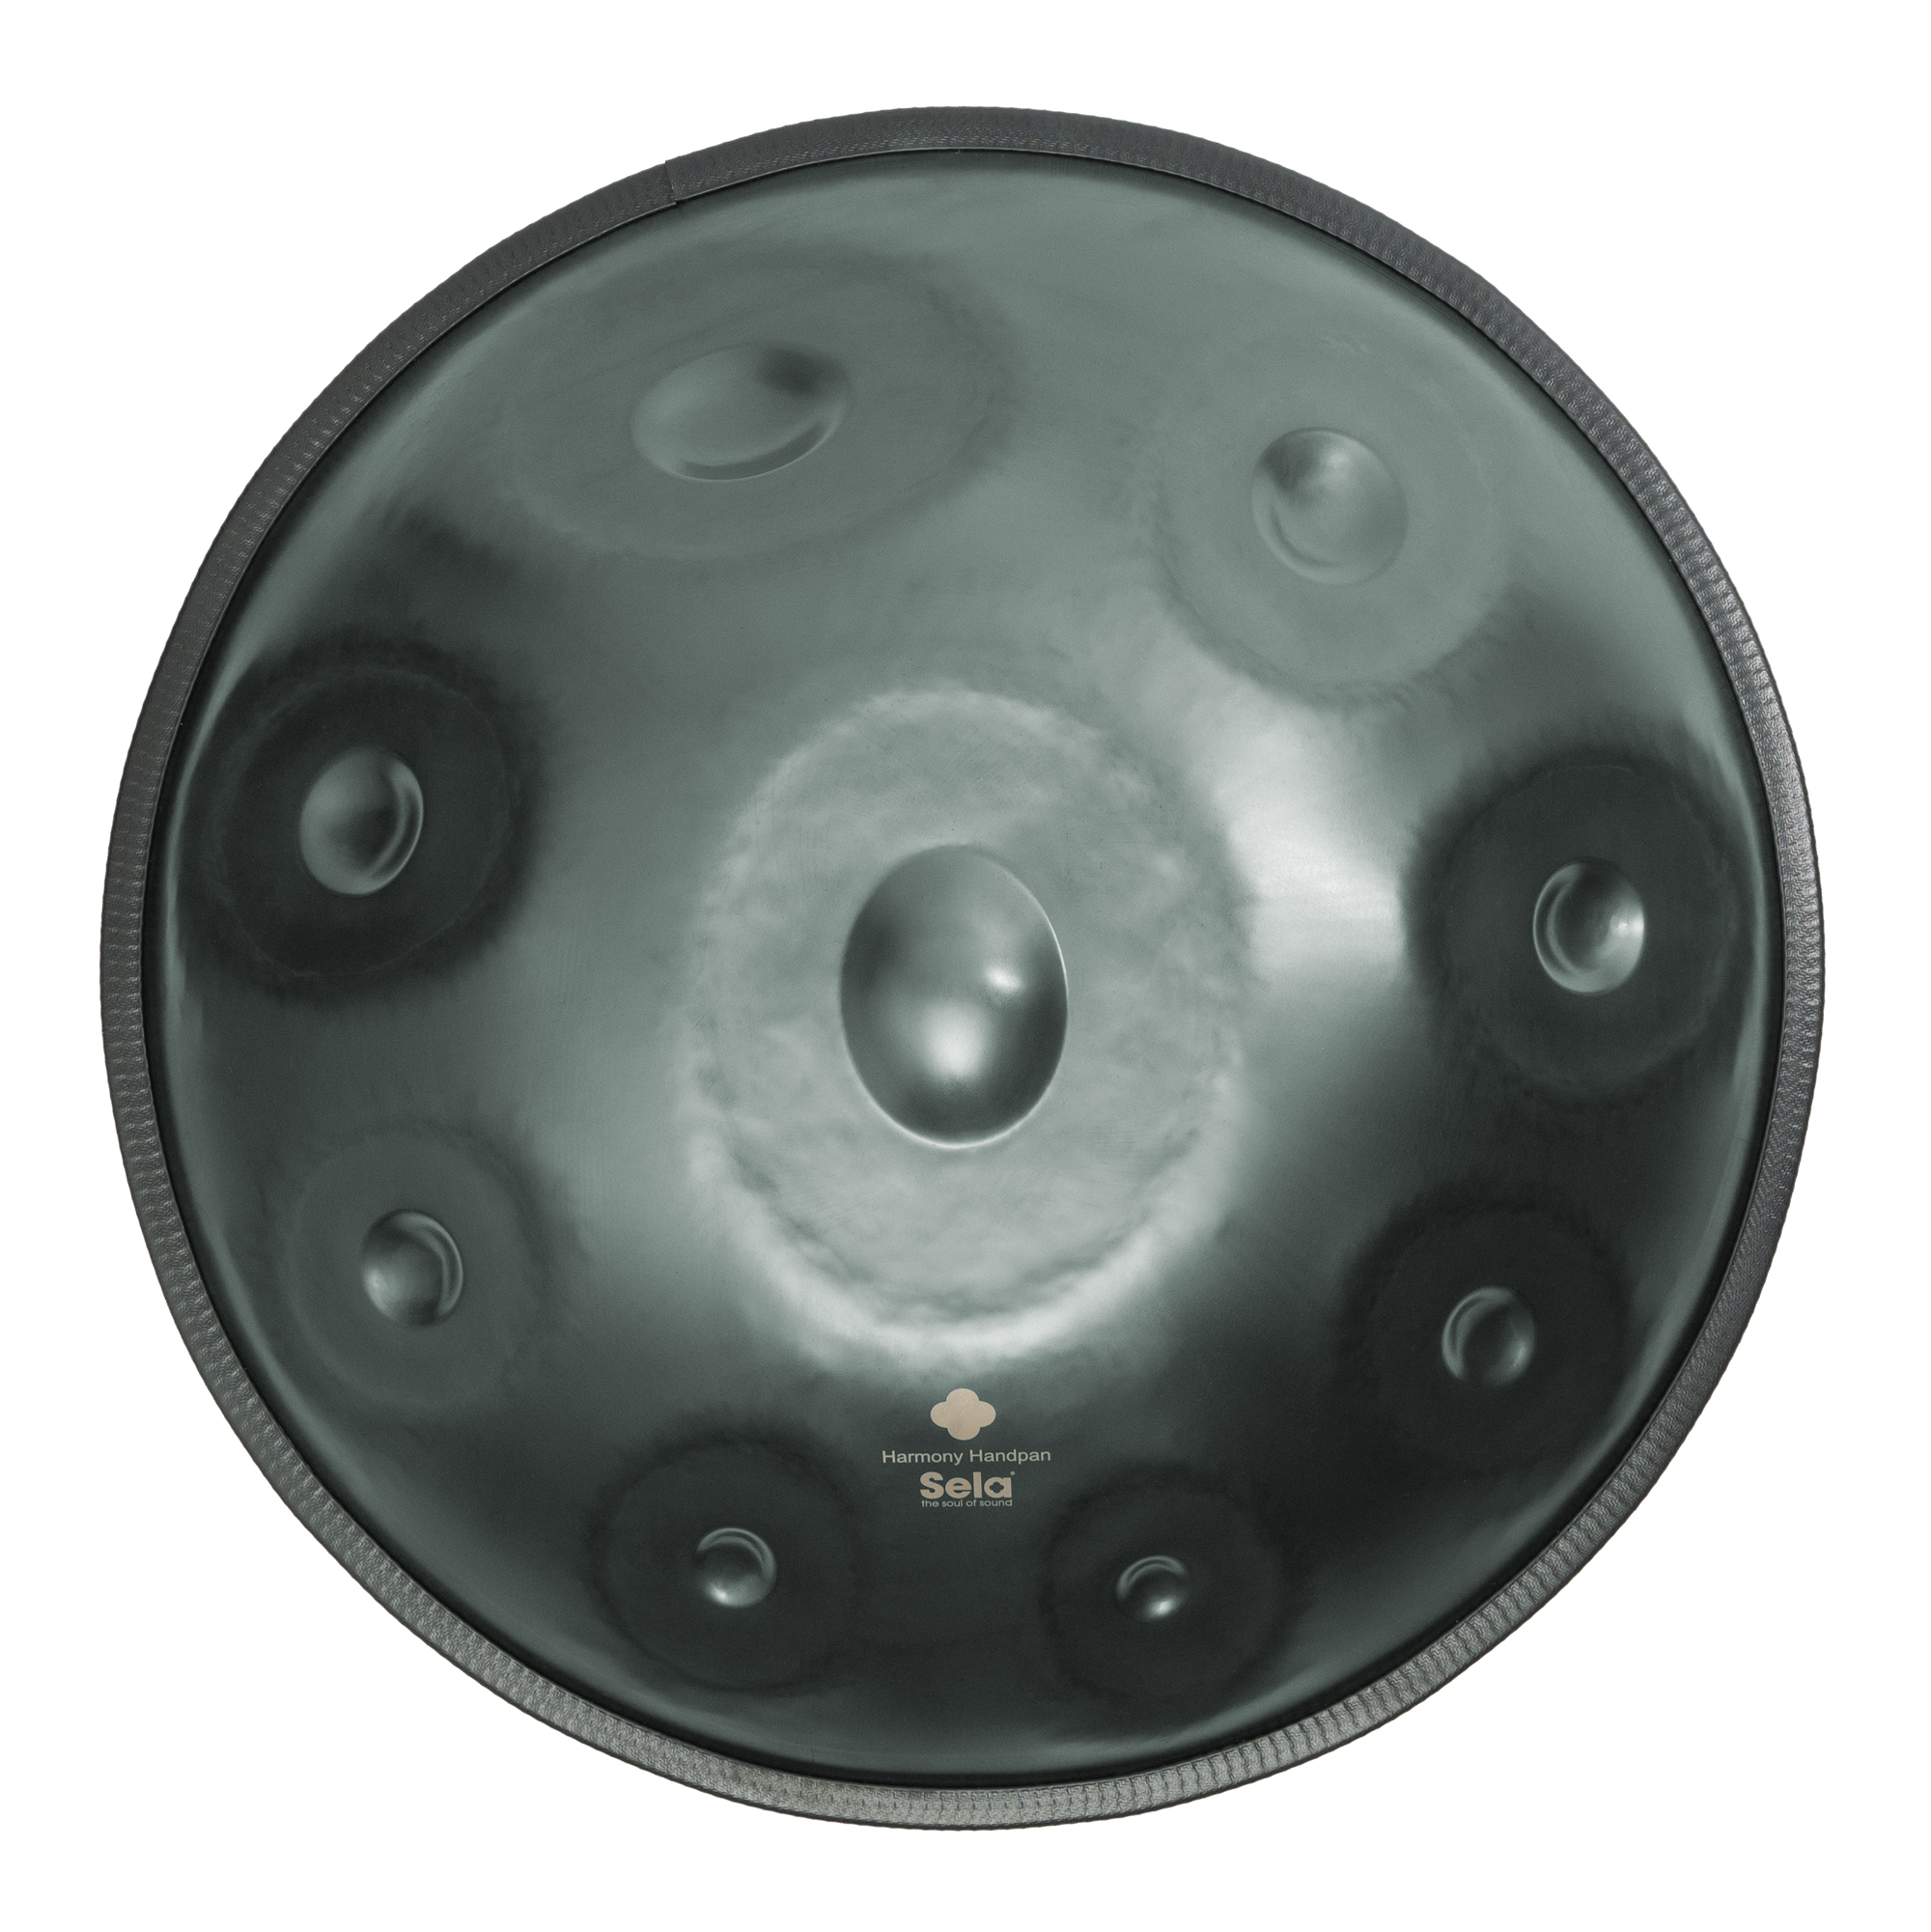 Harmony Handpan D Amara Product Photos 3